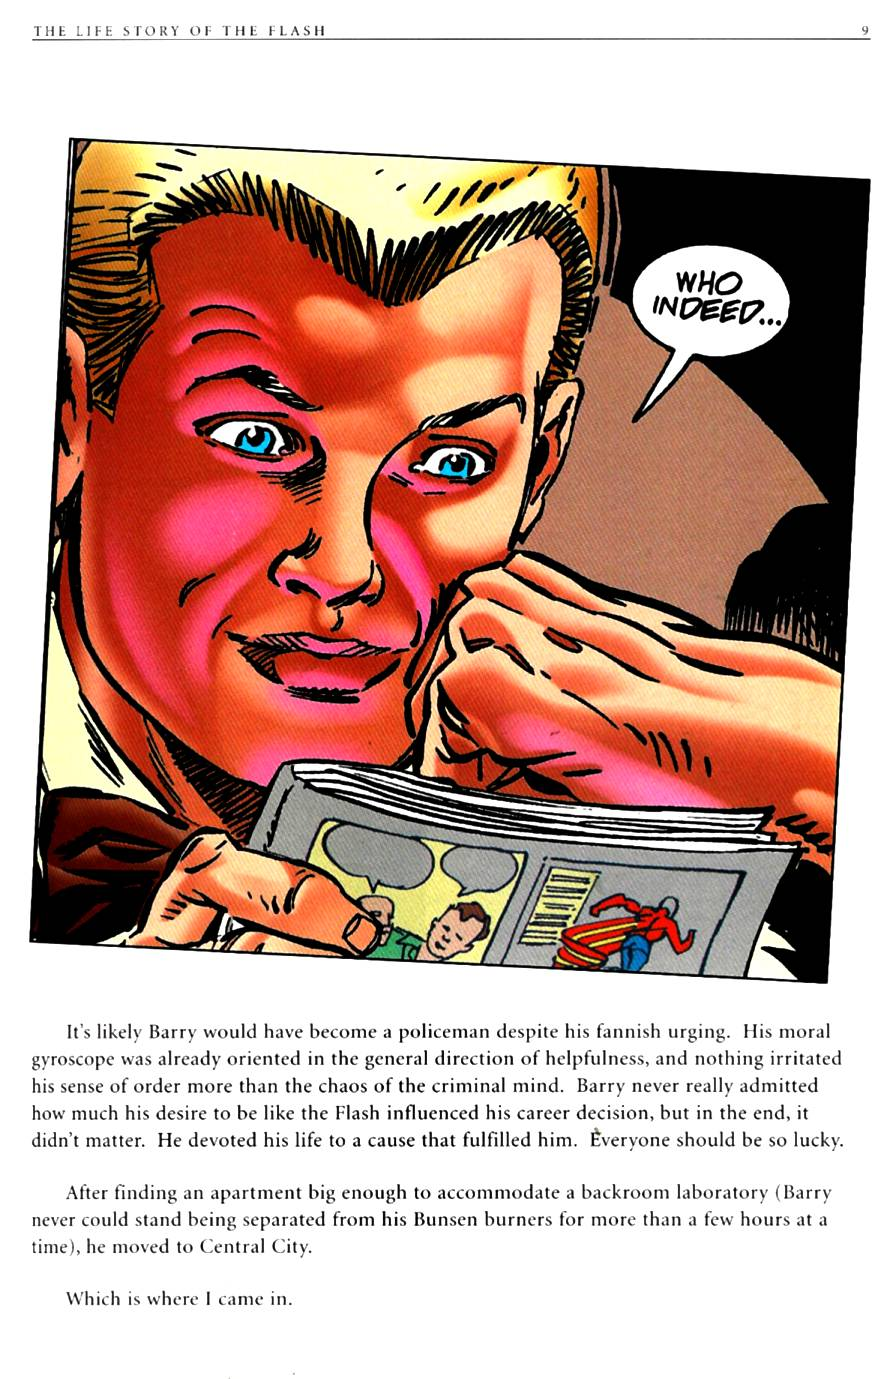 Read online The Life Story of the Flash comic -  Issue # Full - 11